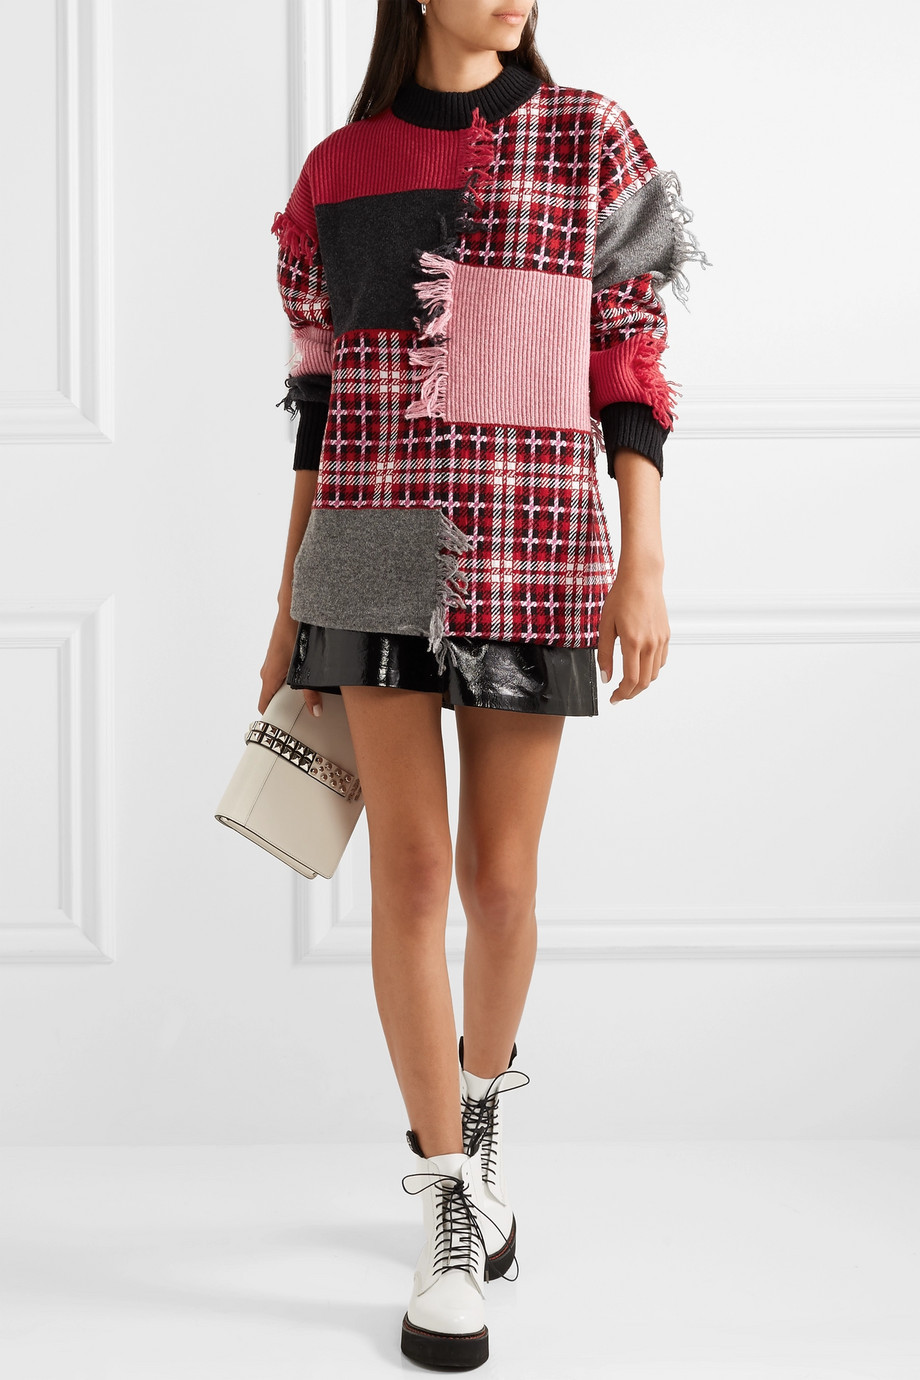 MSGM Fringed patchwork wool-blend sweater $1,200